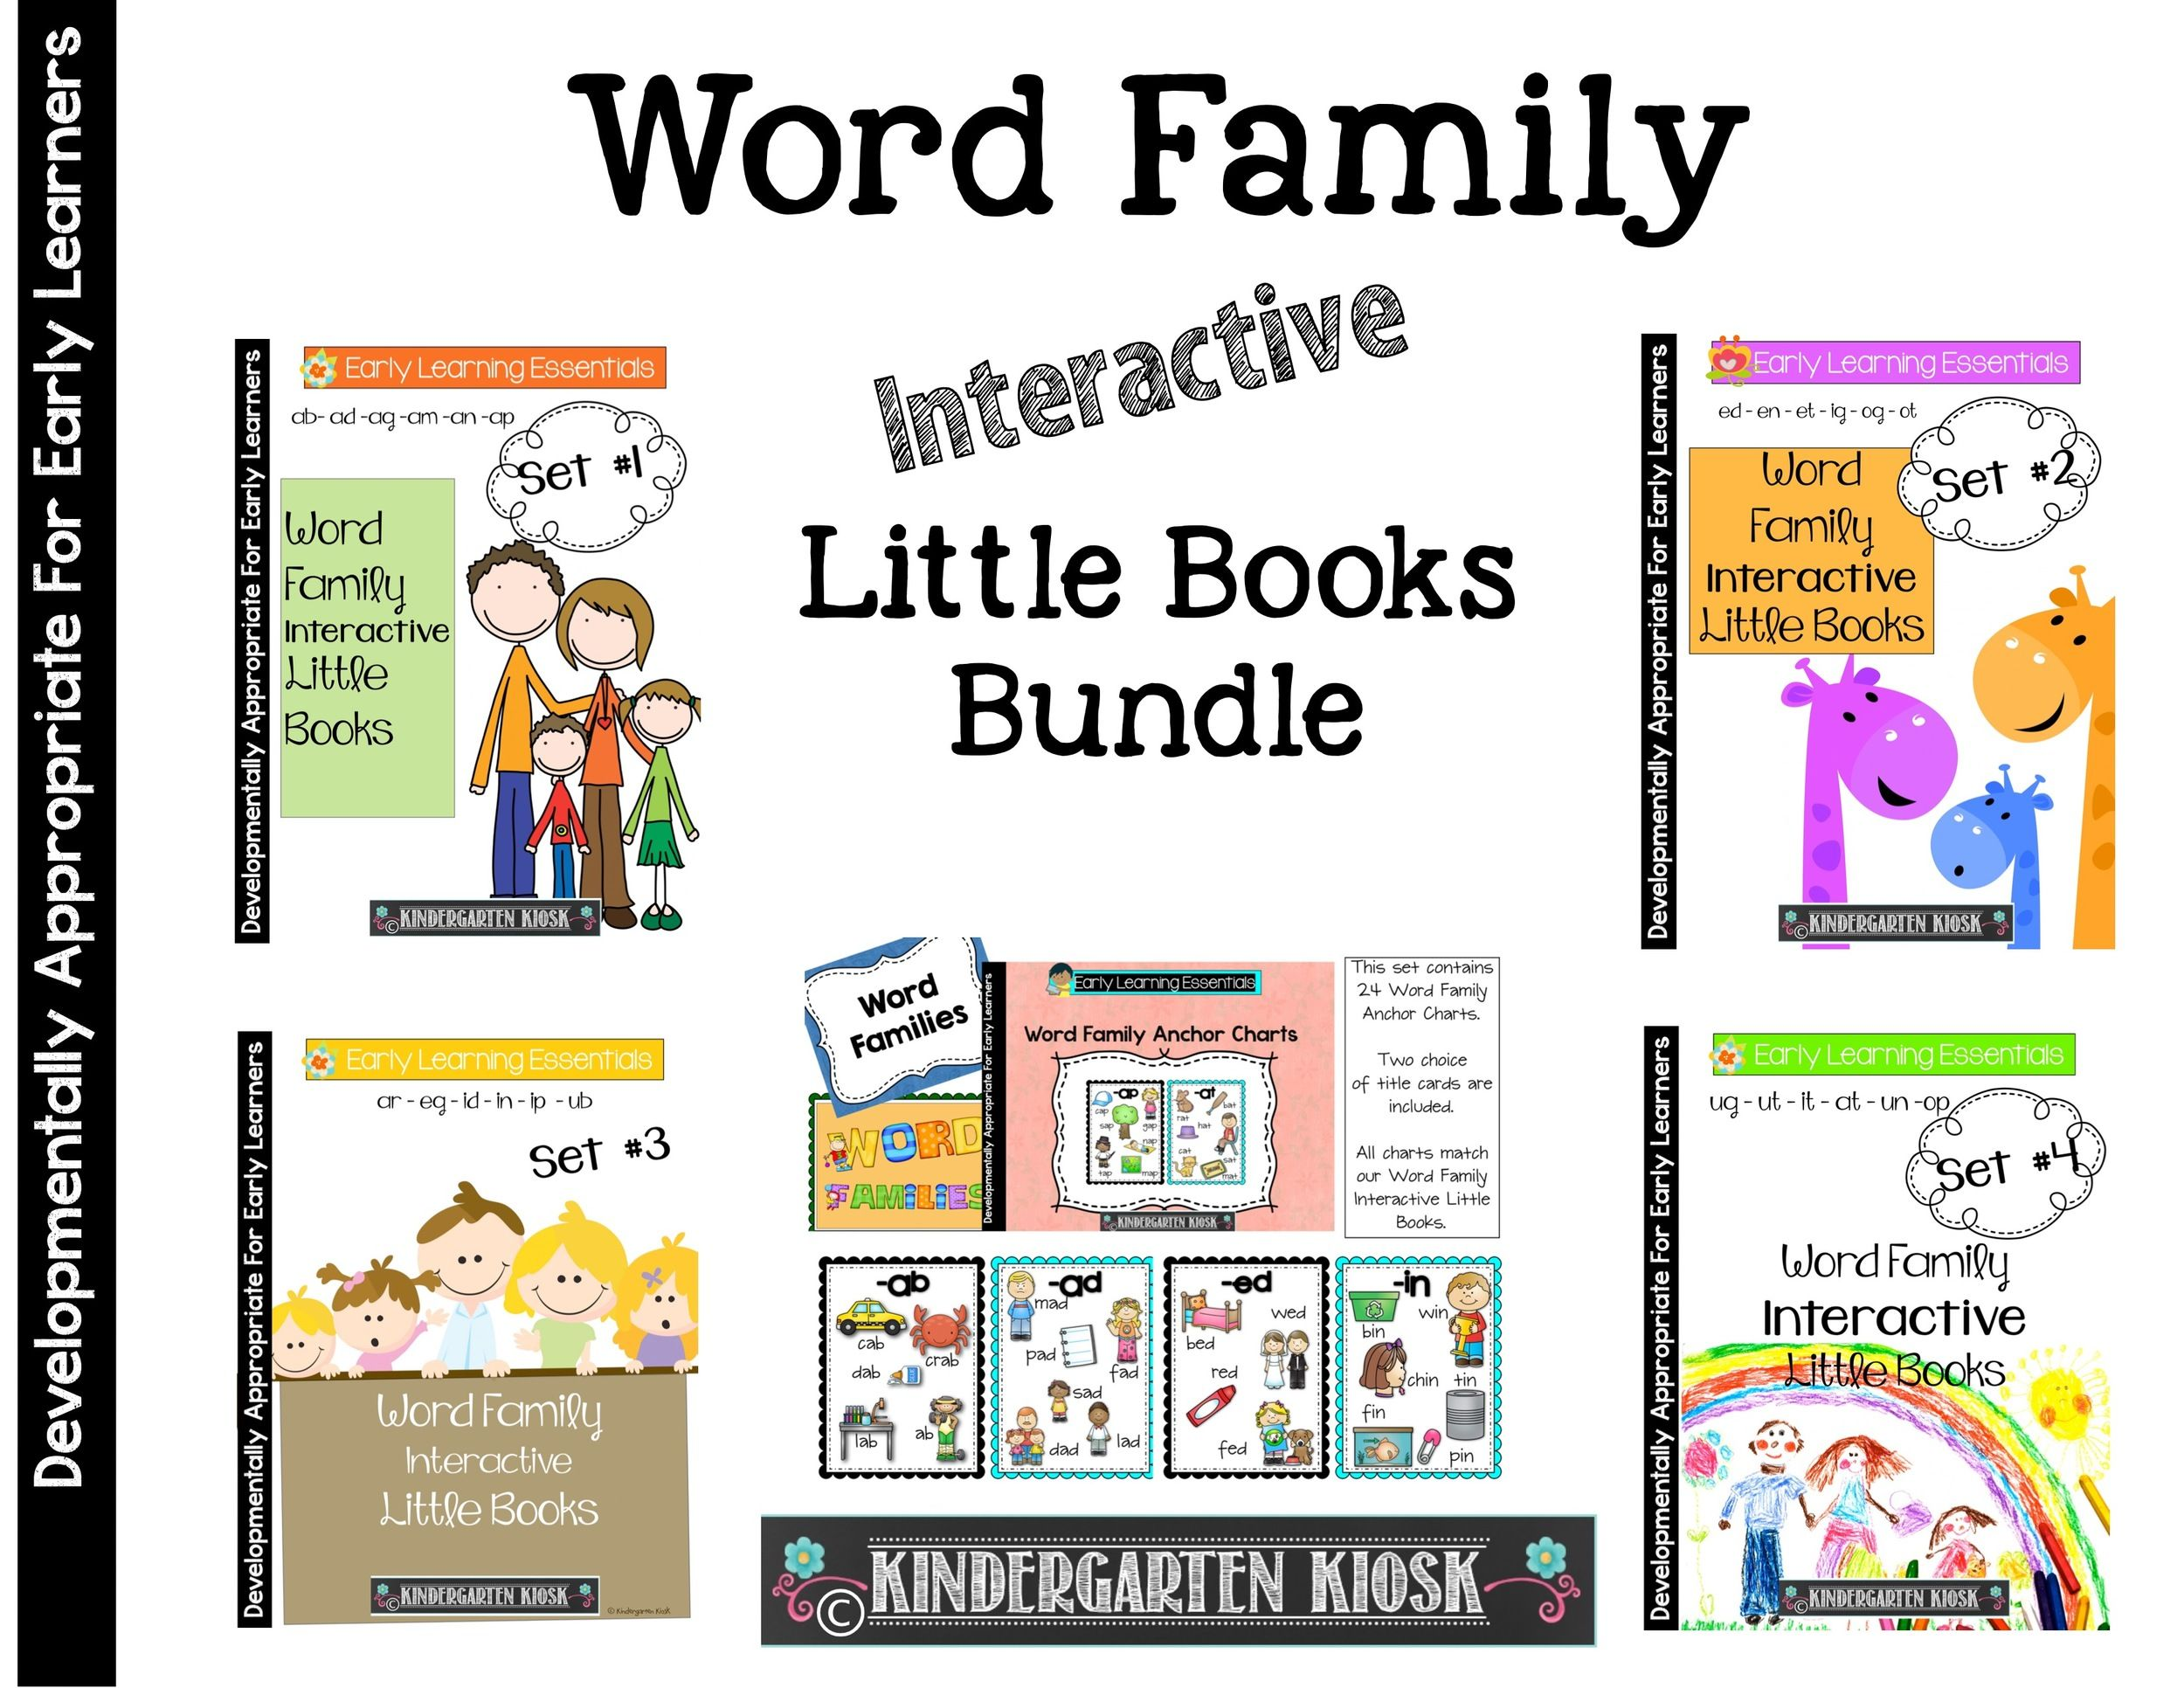 Word Family Interactive Little Books Bundle